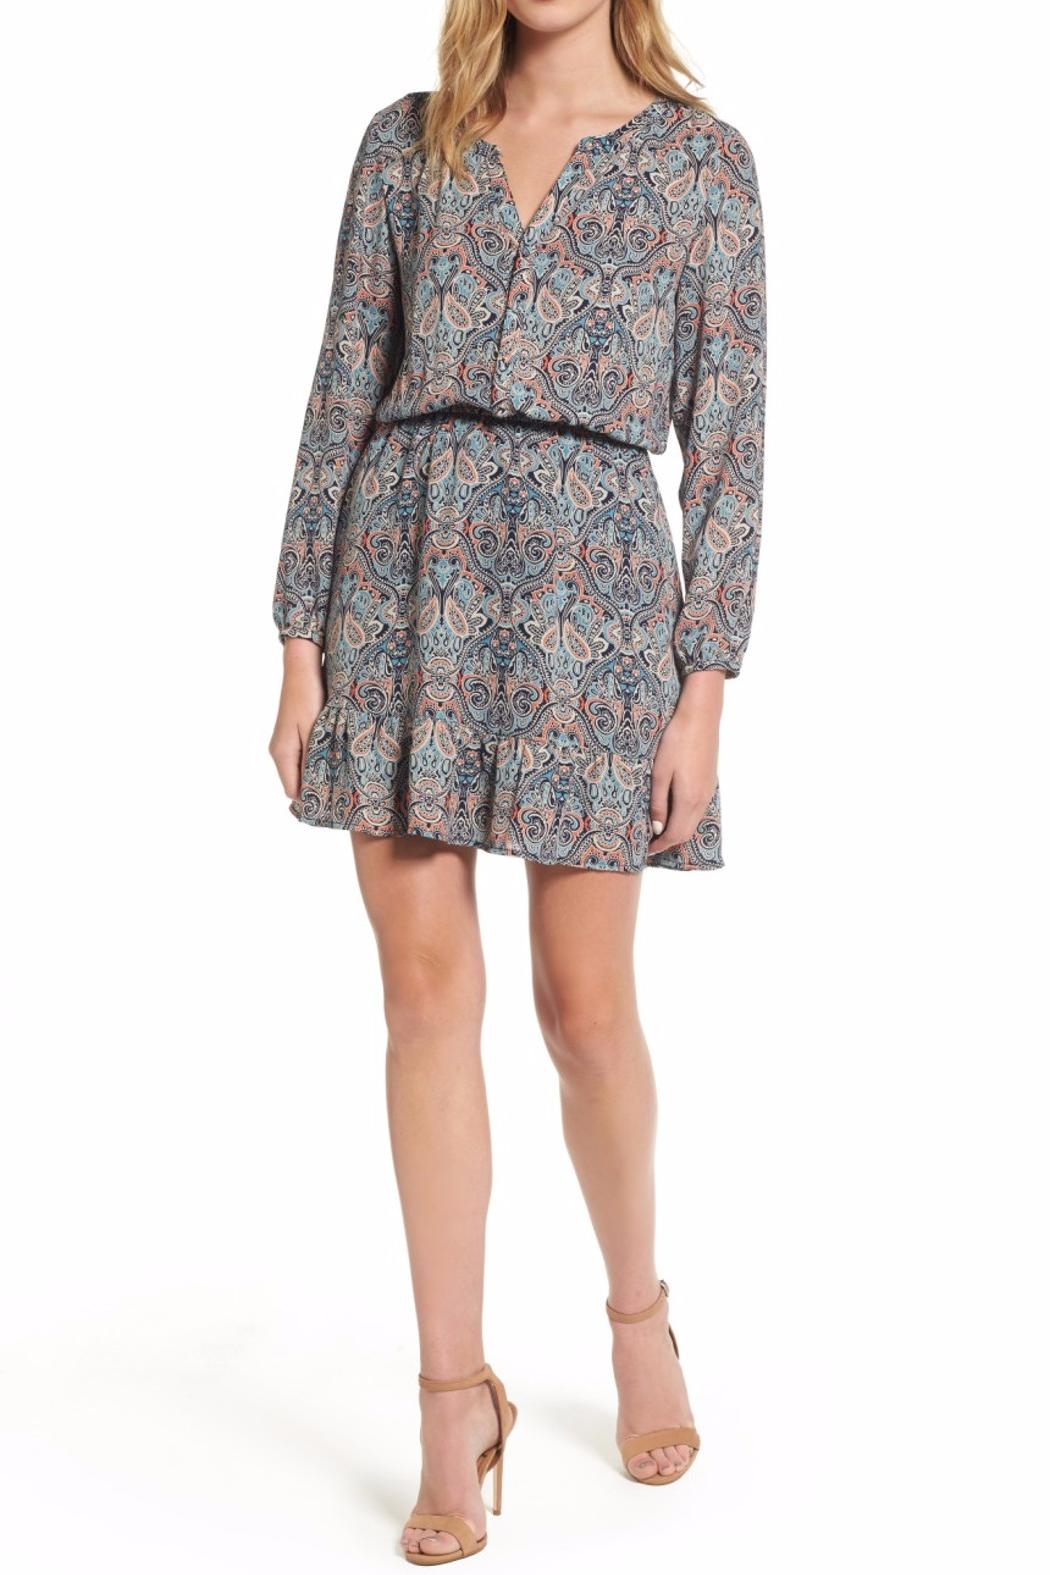 Cupcakes & Cashmere Selma Paisley Dress - Front Cropped Image